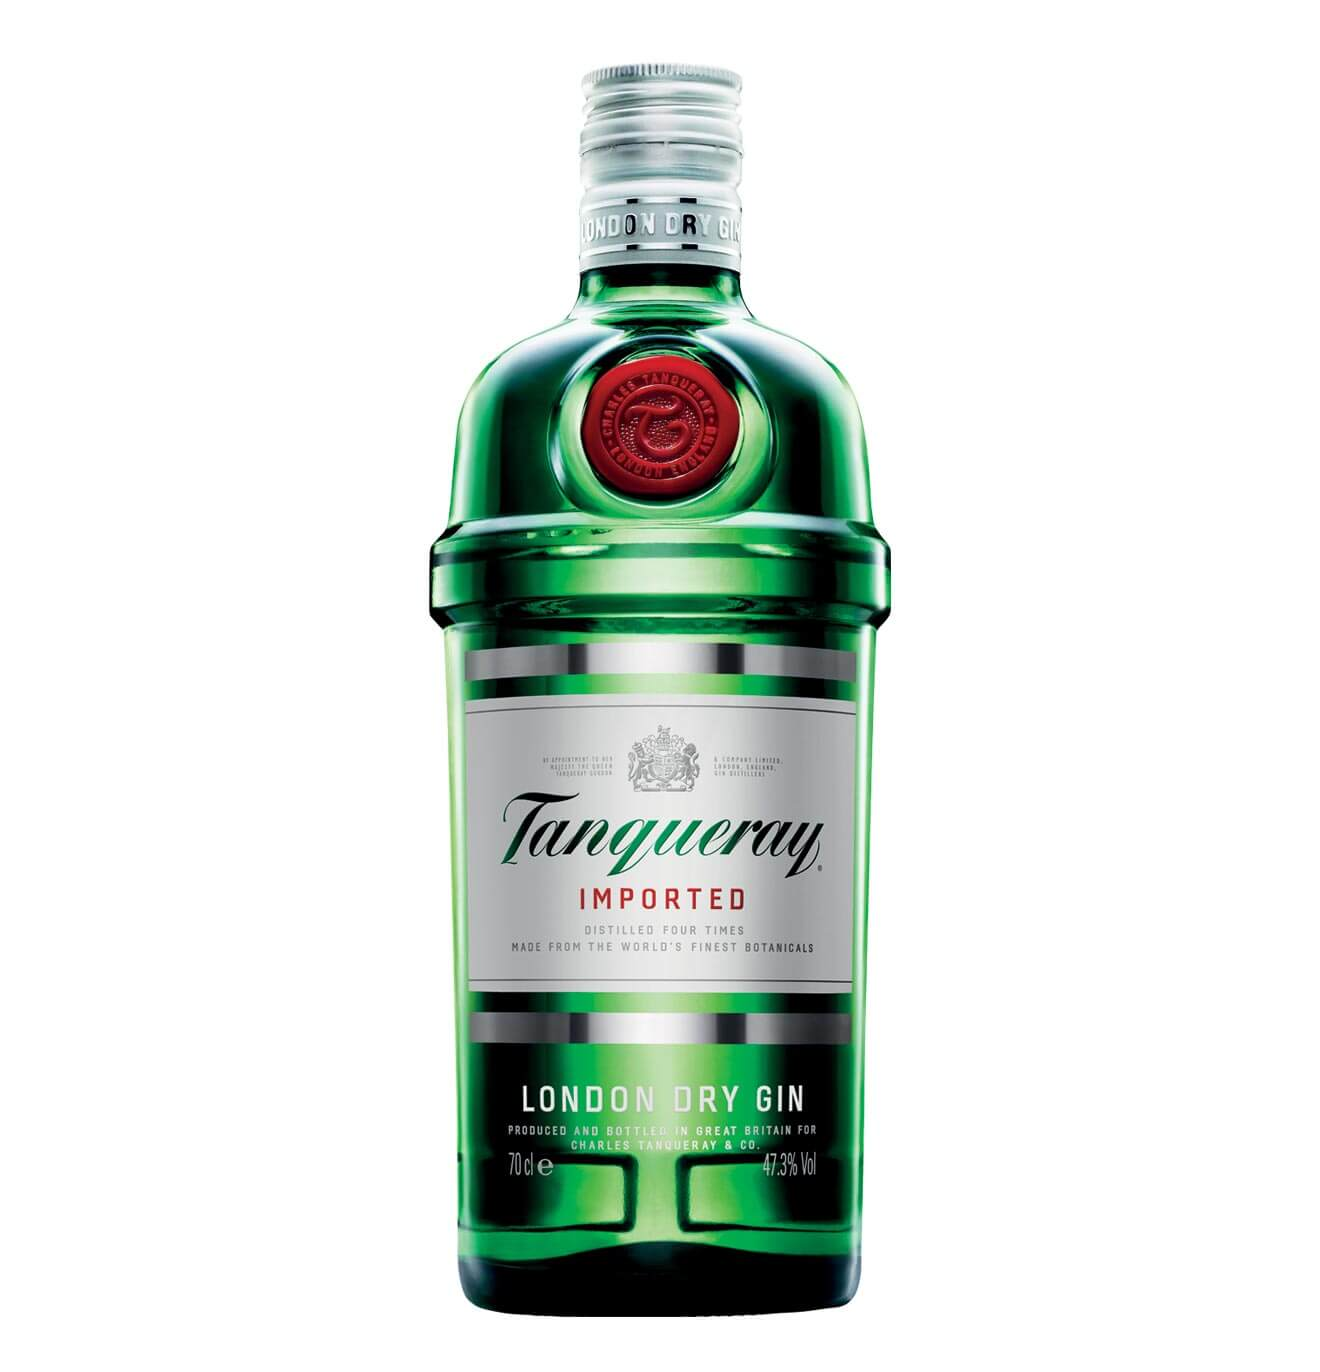 Tanqueray London Dry Gin, bottle on white